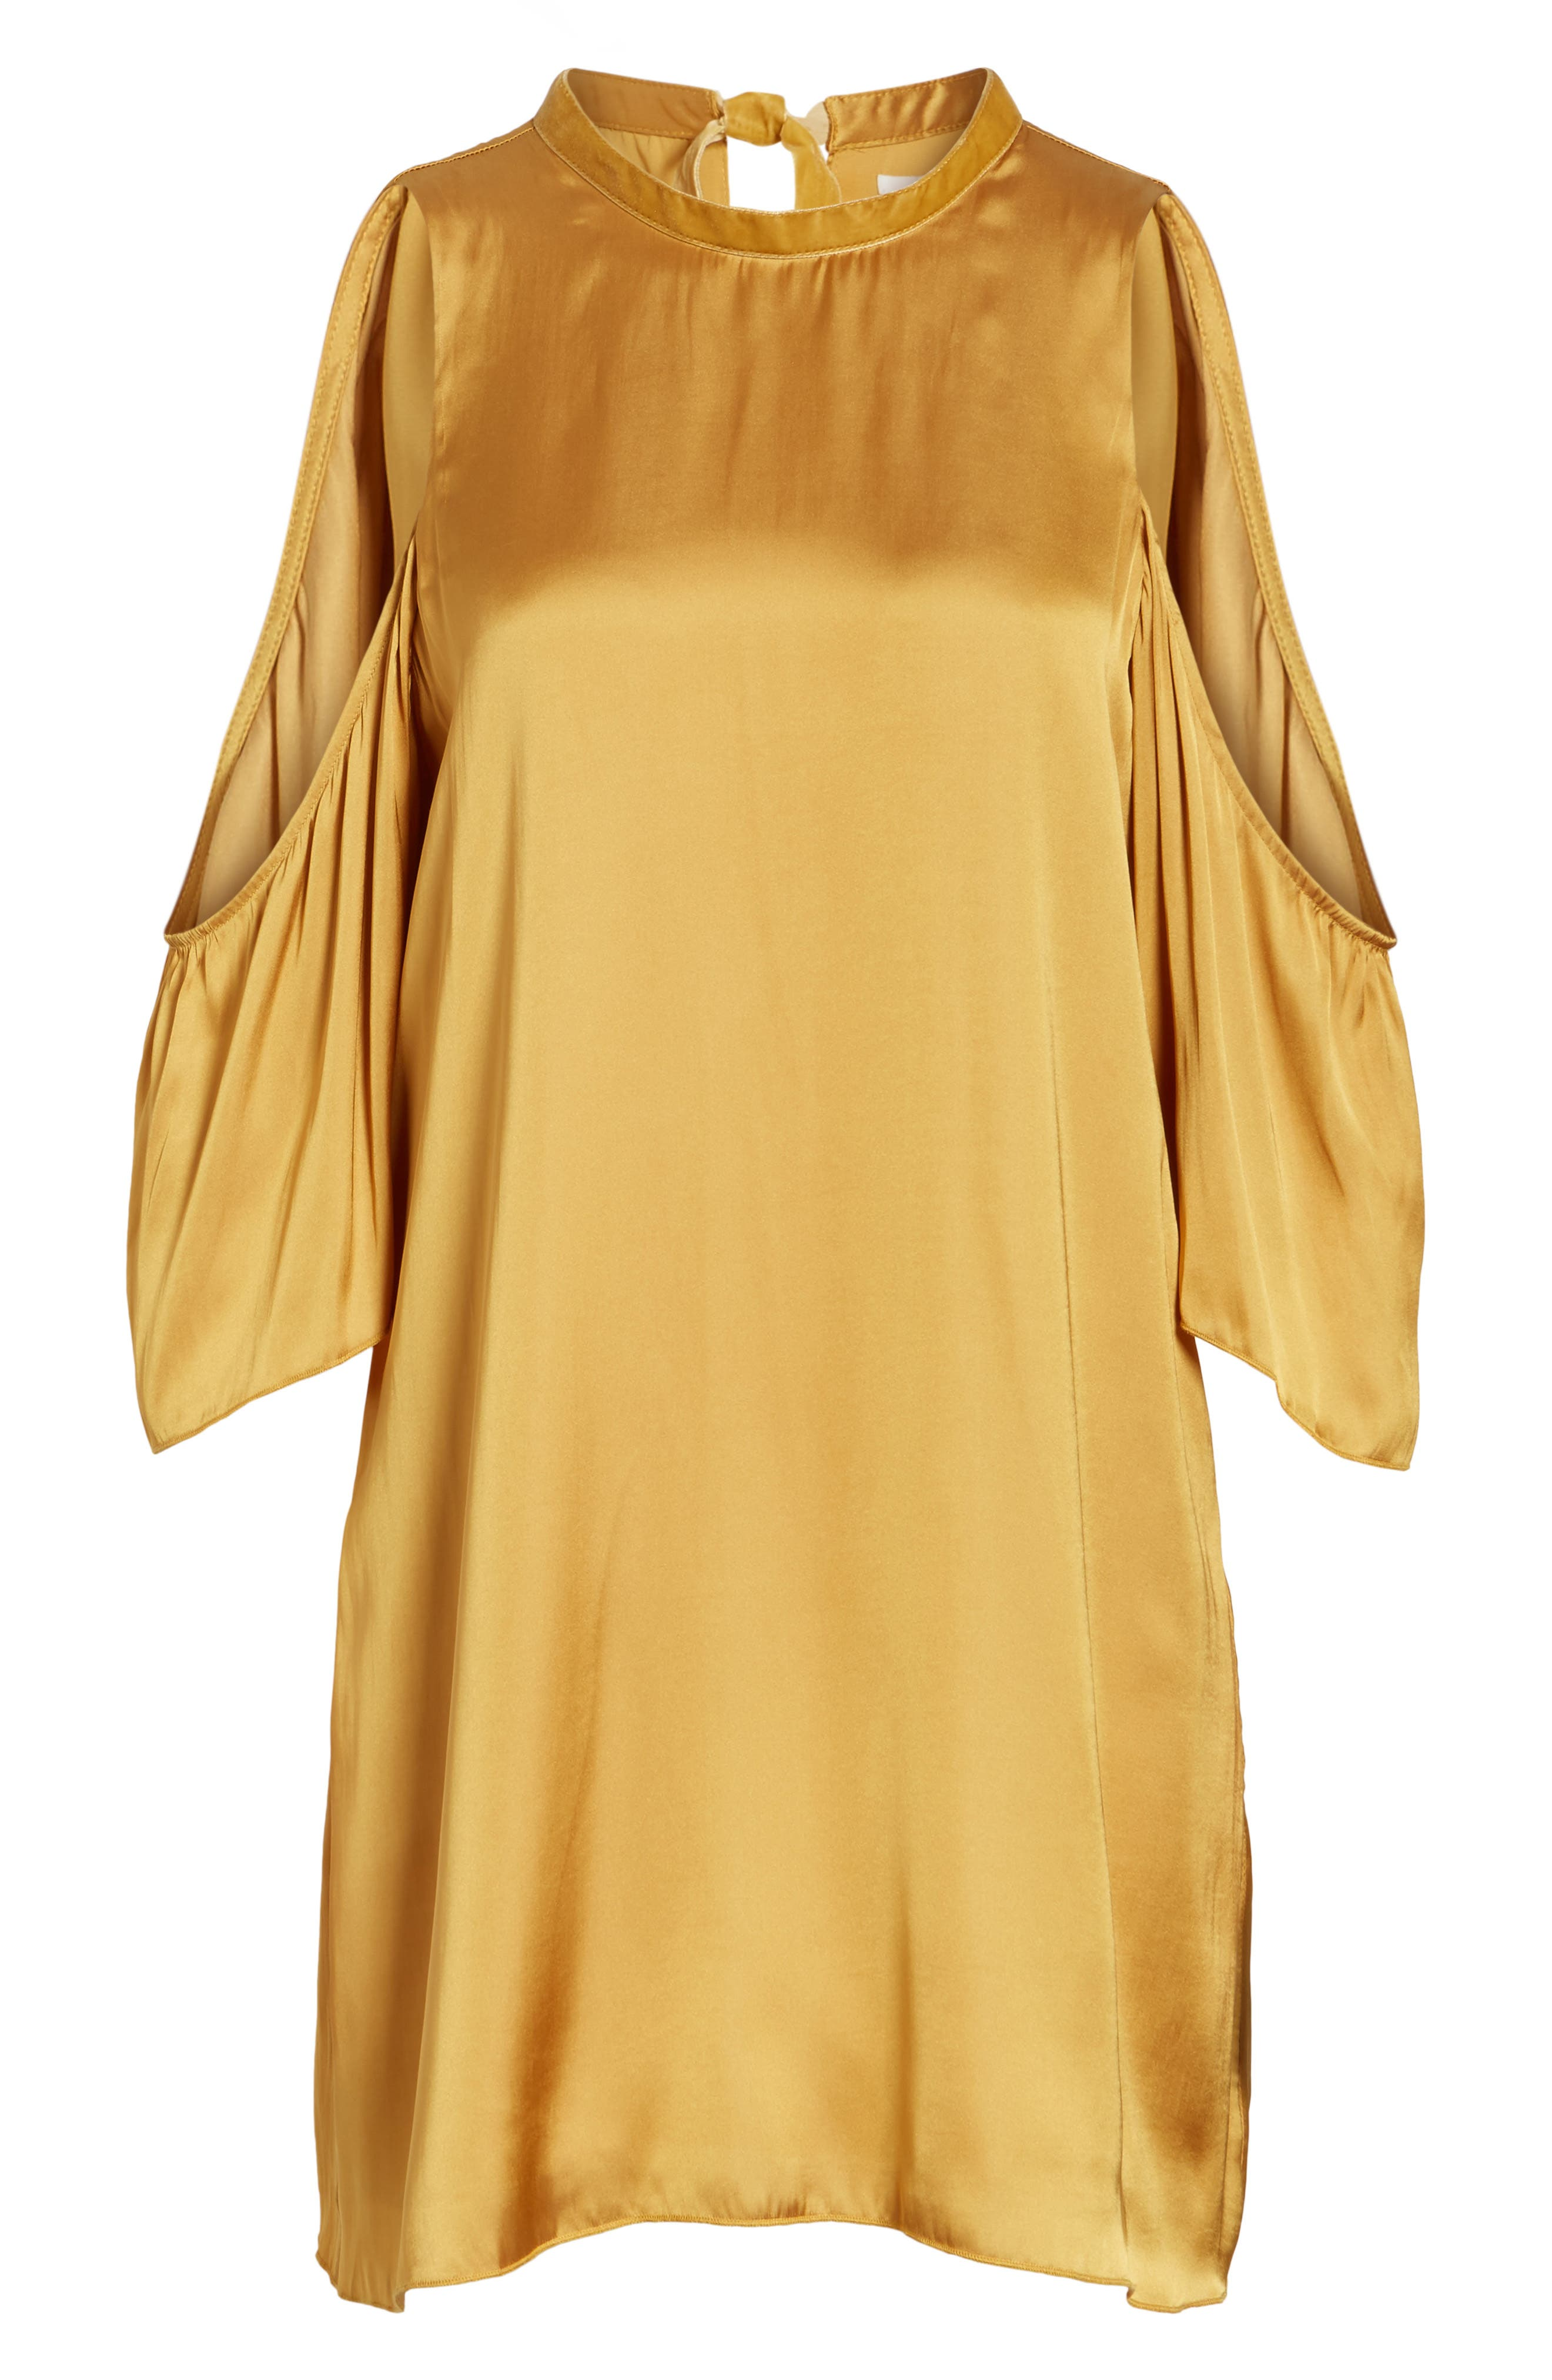 Rablo Cold Shoulder Satin Dress,                             Alternate thumbnail 6, color,                             Marigold